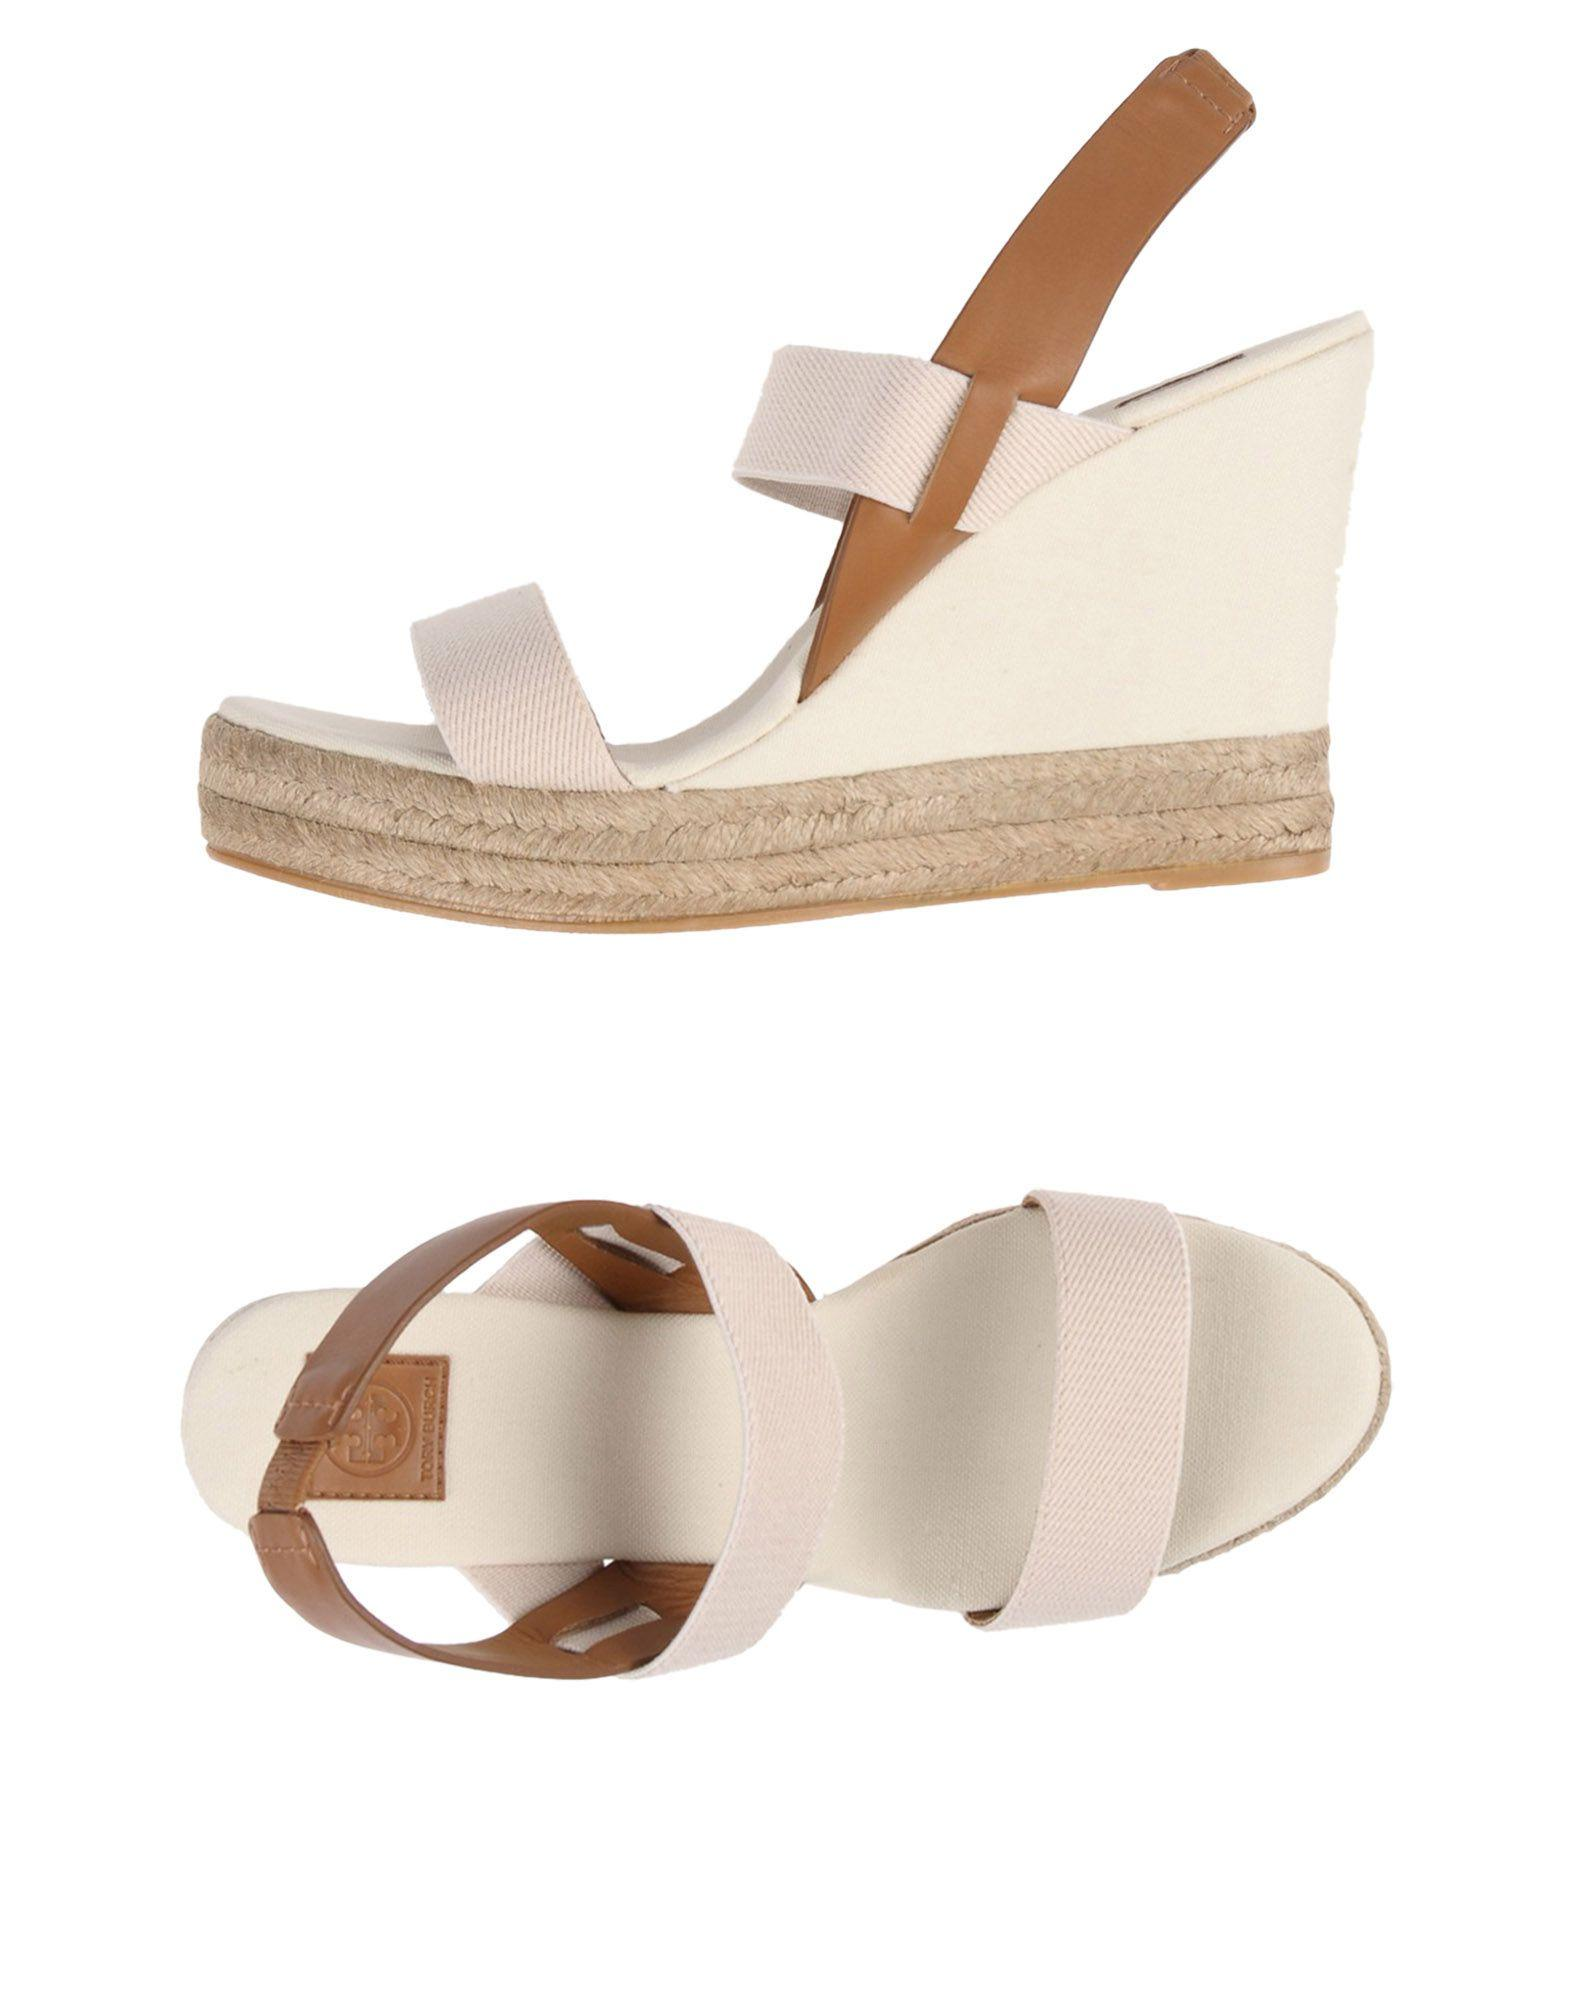 Tory Burch Sandals In Ivory